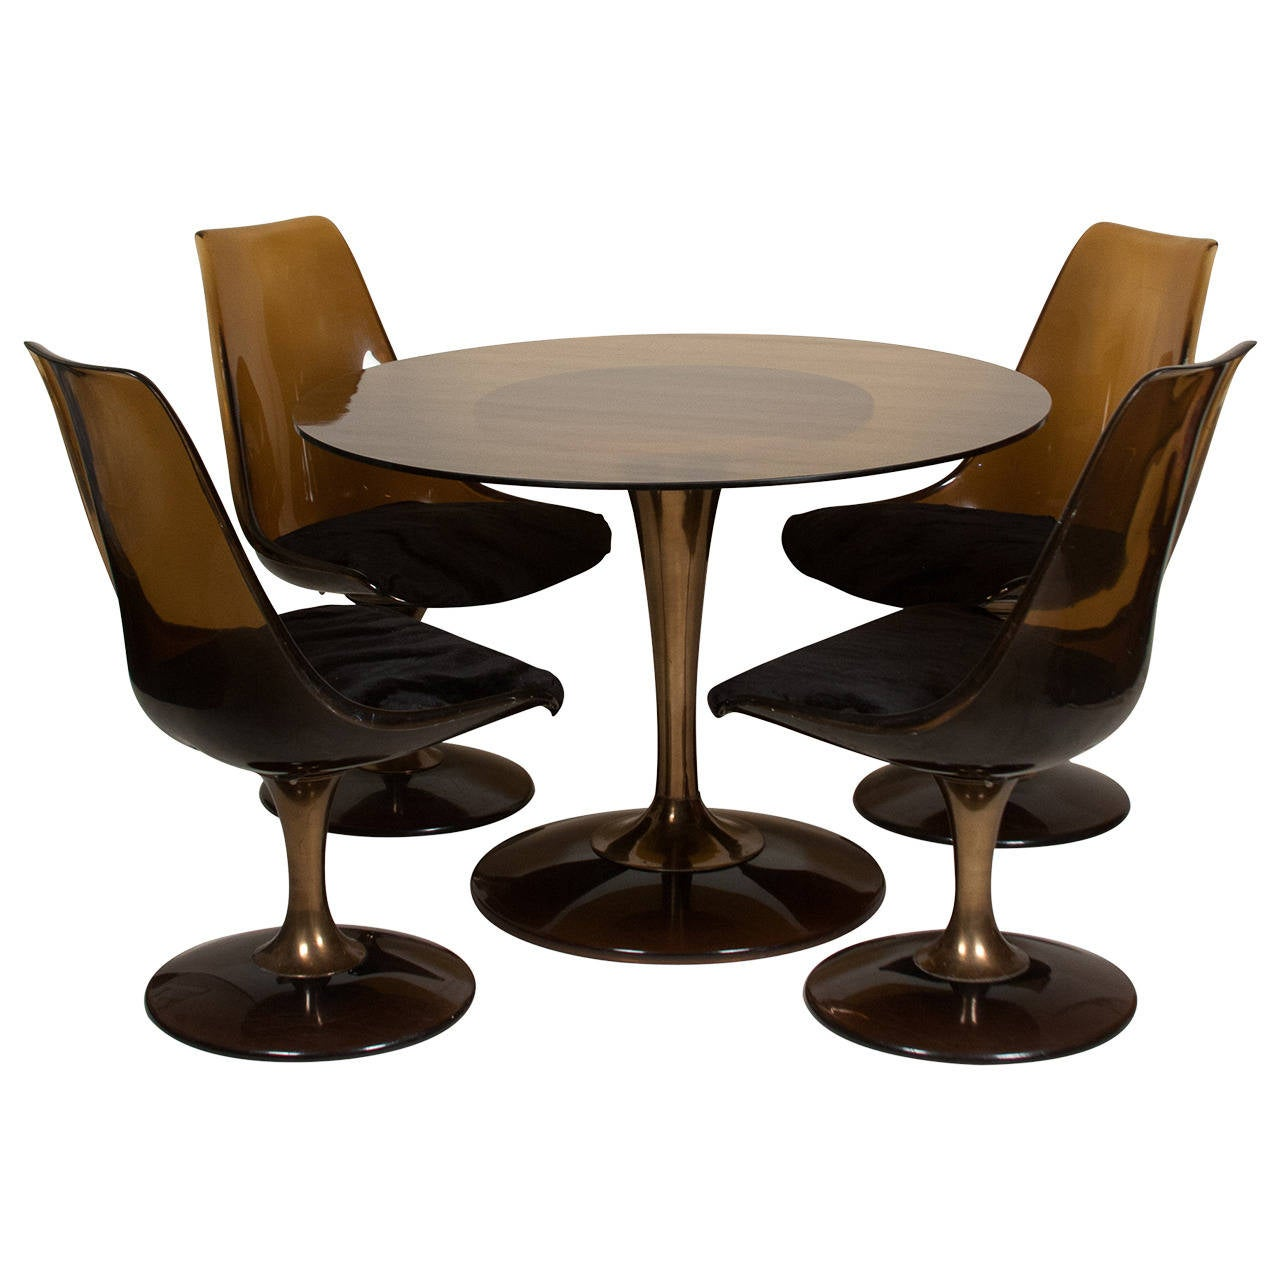 Amber glass top tulip dining table and chairs at 1stdibs - Glass top dining tables and chairs ...